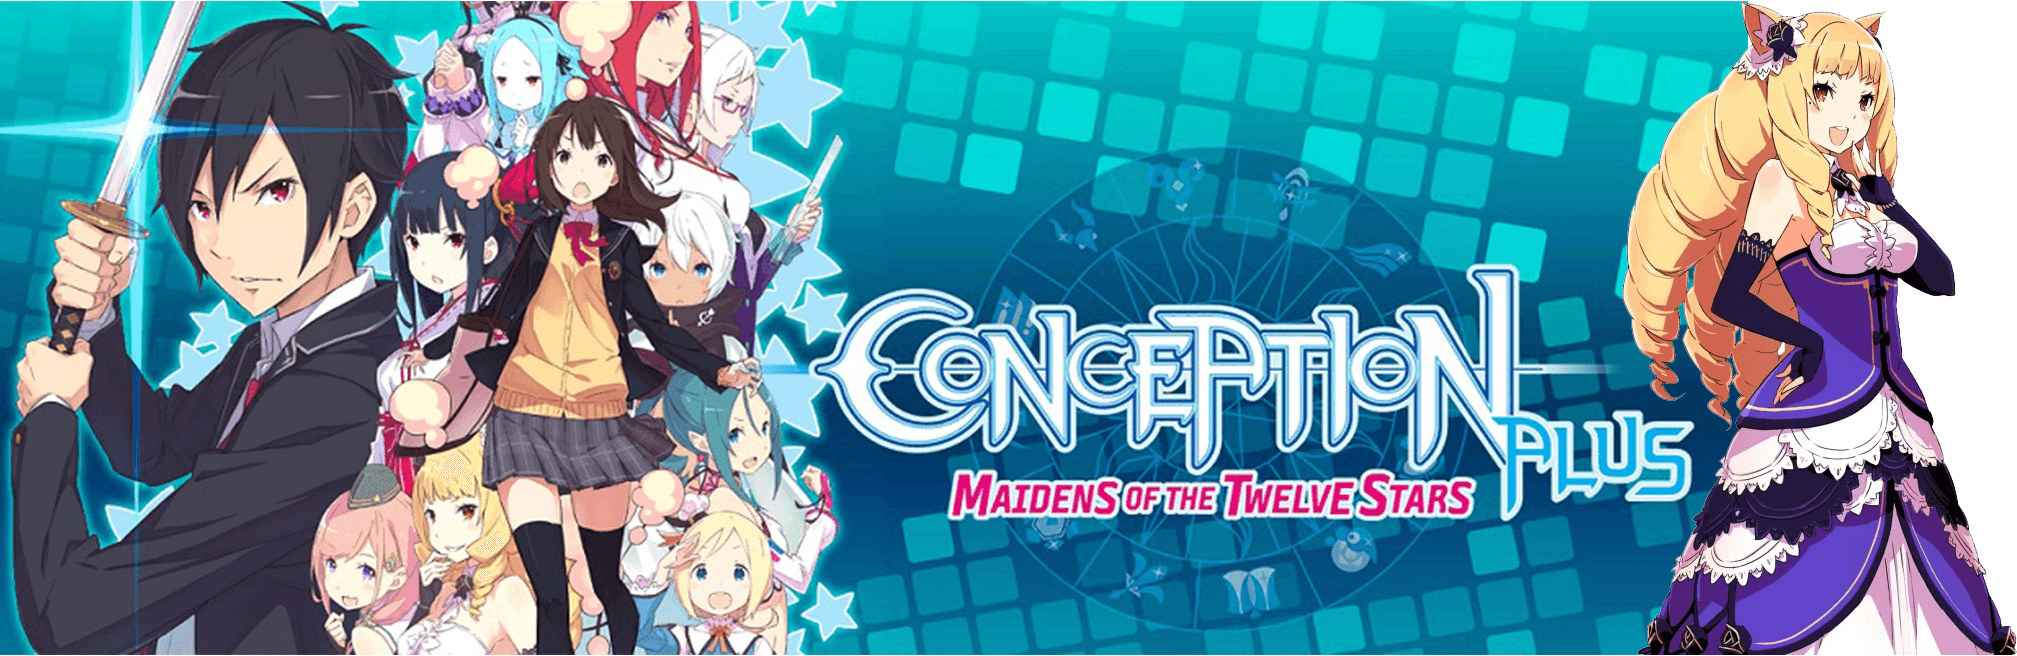 Conception Plus Maidens of the Twelve Stars Femiruna